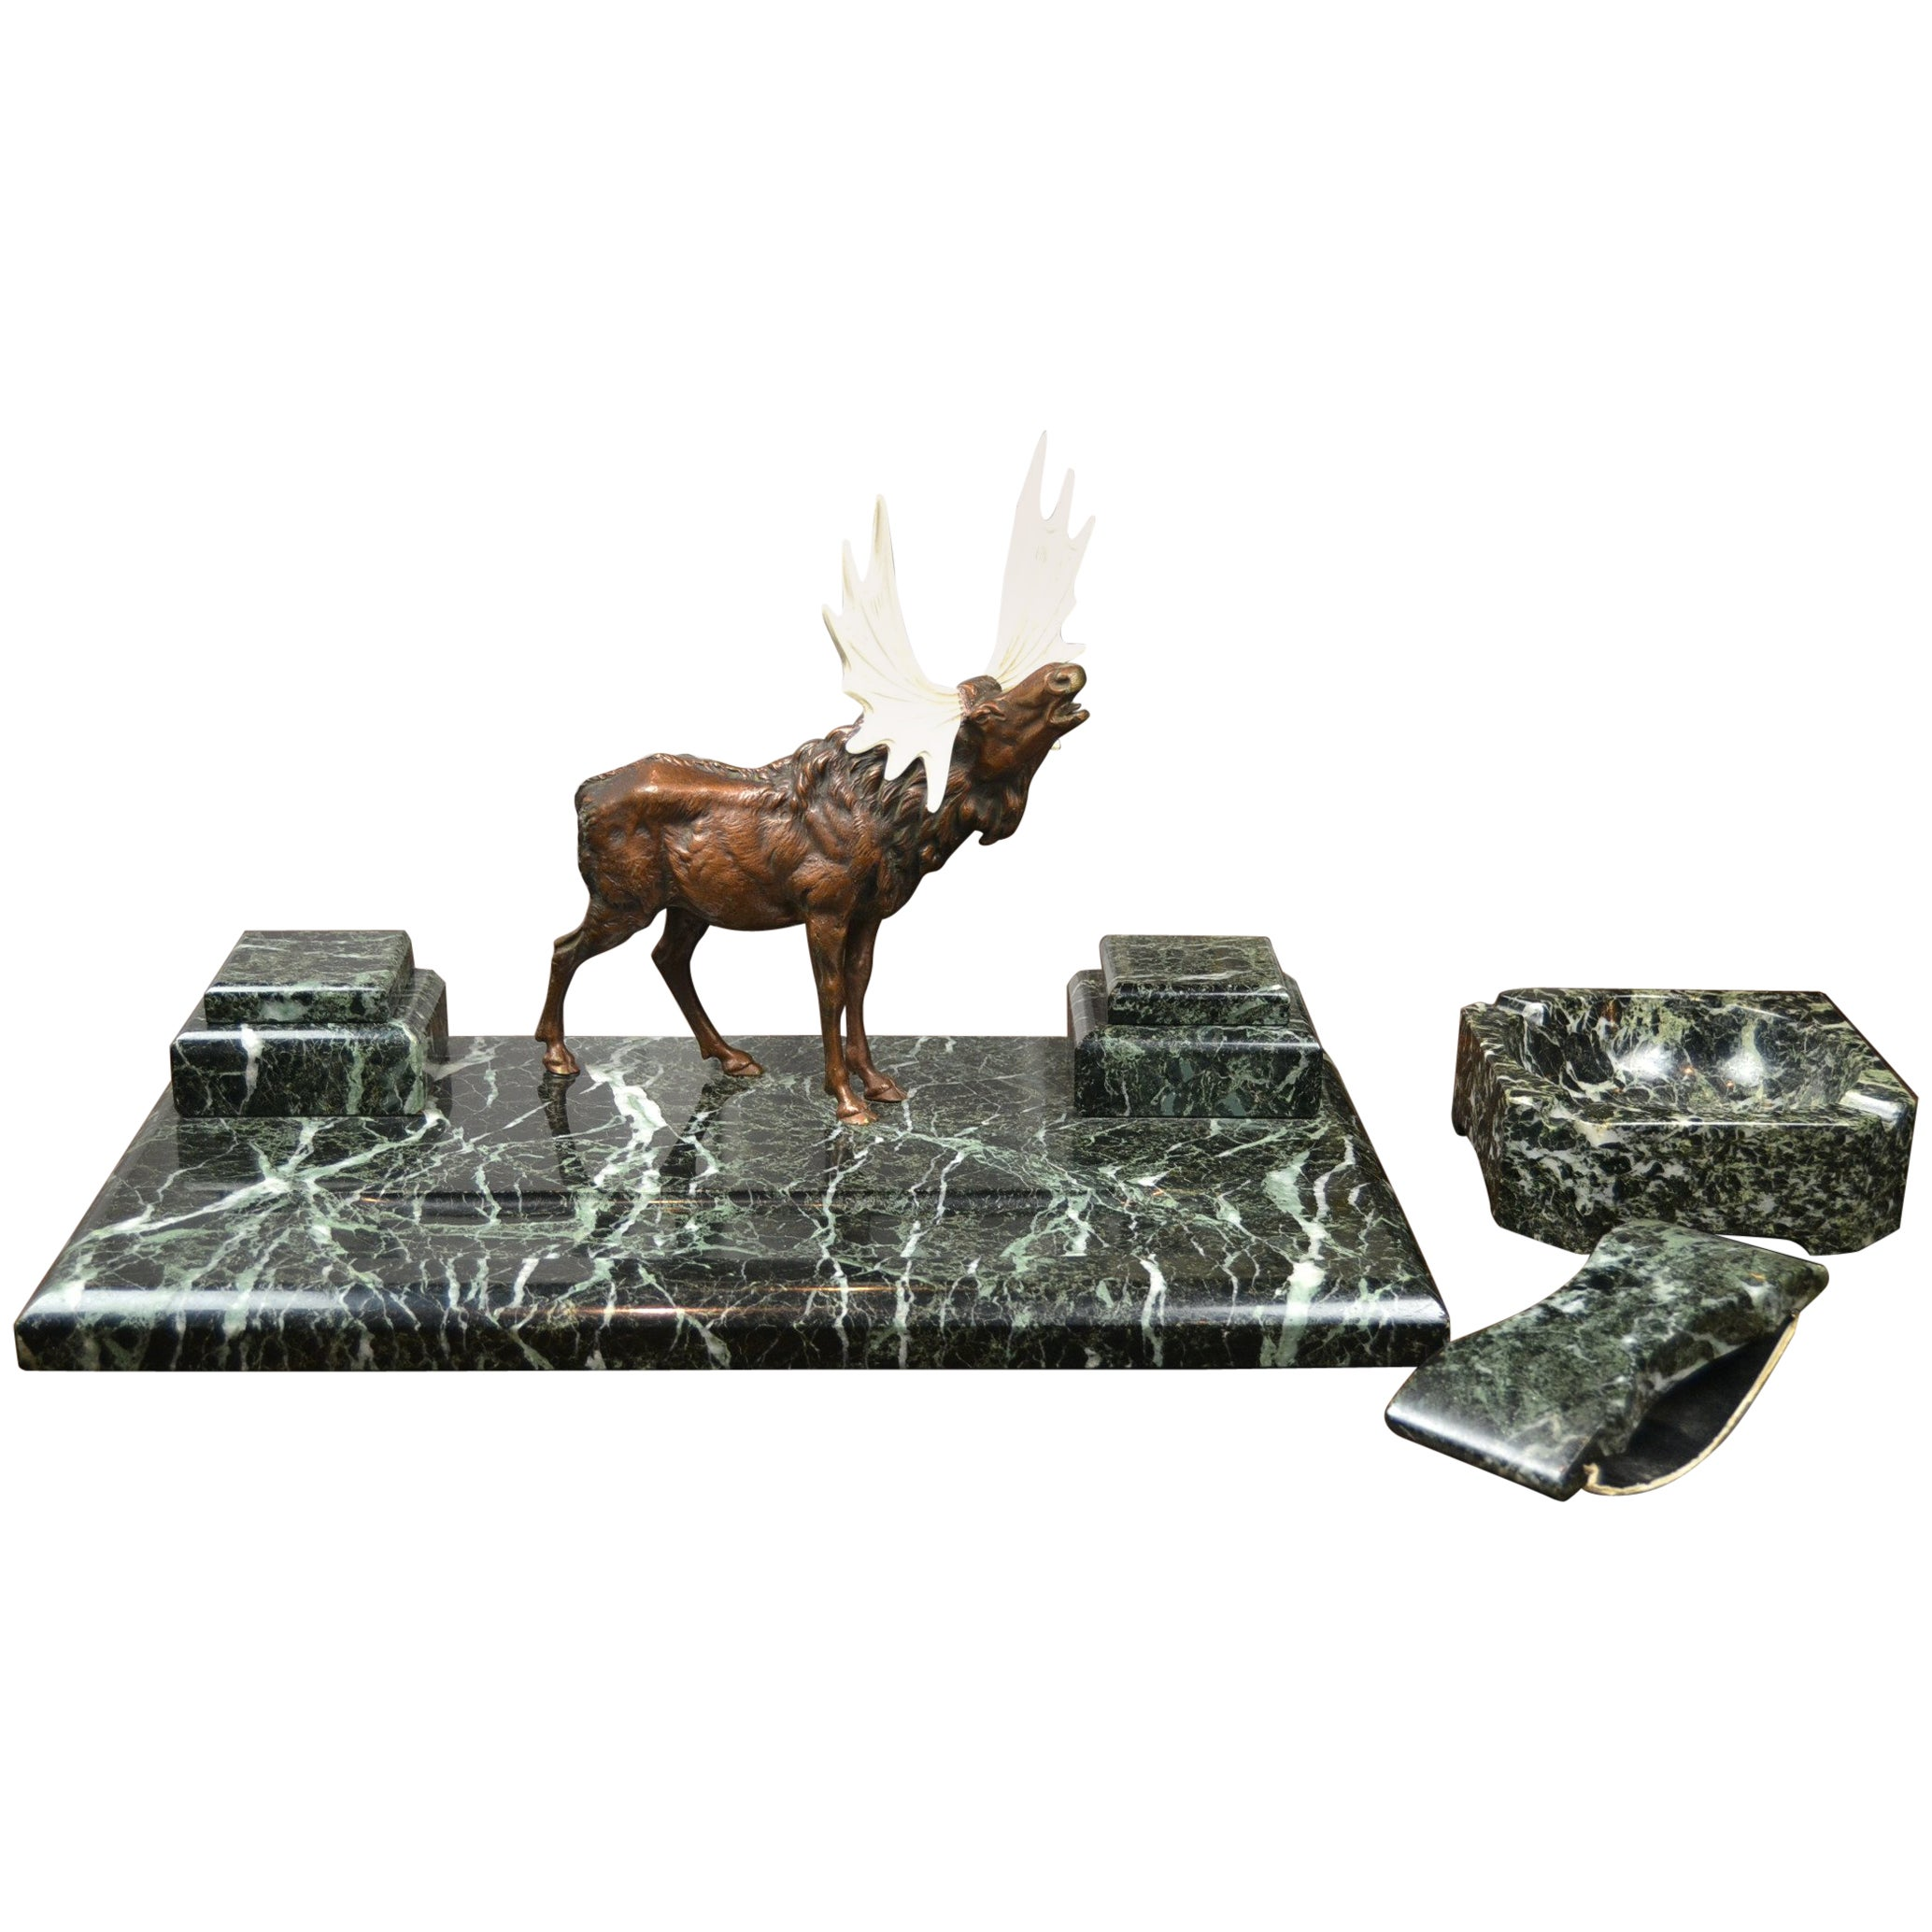 Art Deco Marble Inkwell with Bronze Moose, Ashtray and Ink Dryer, Europe